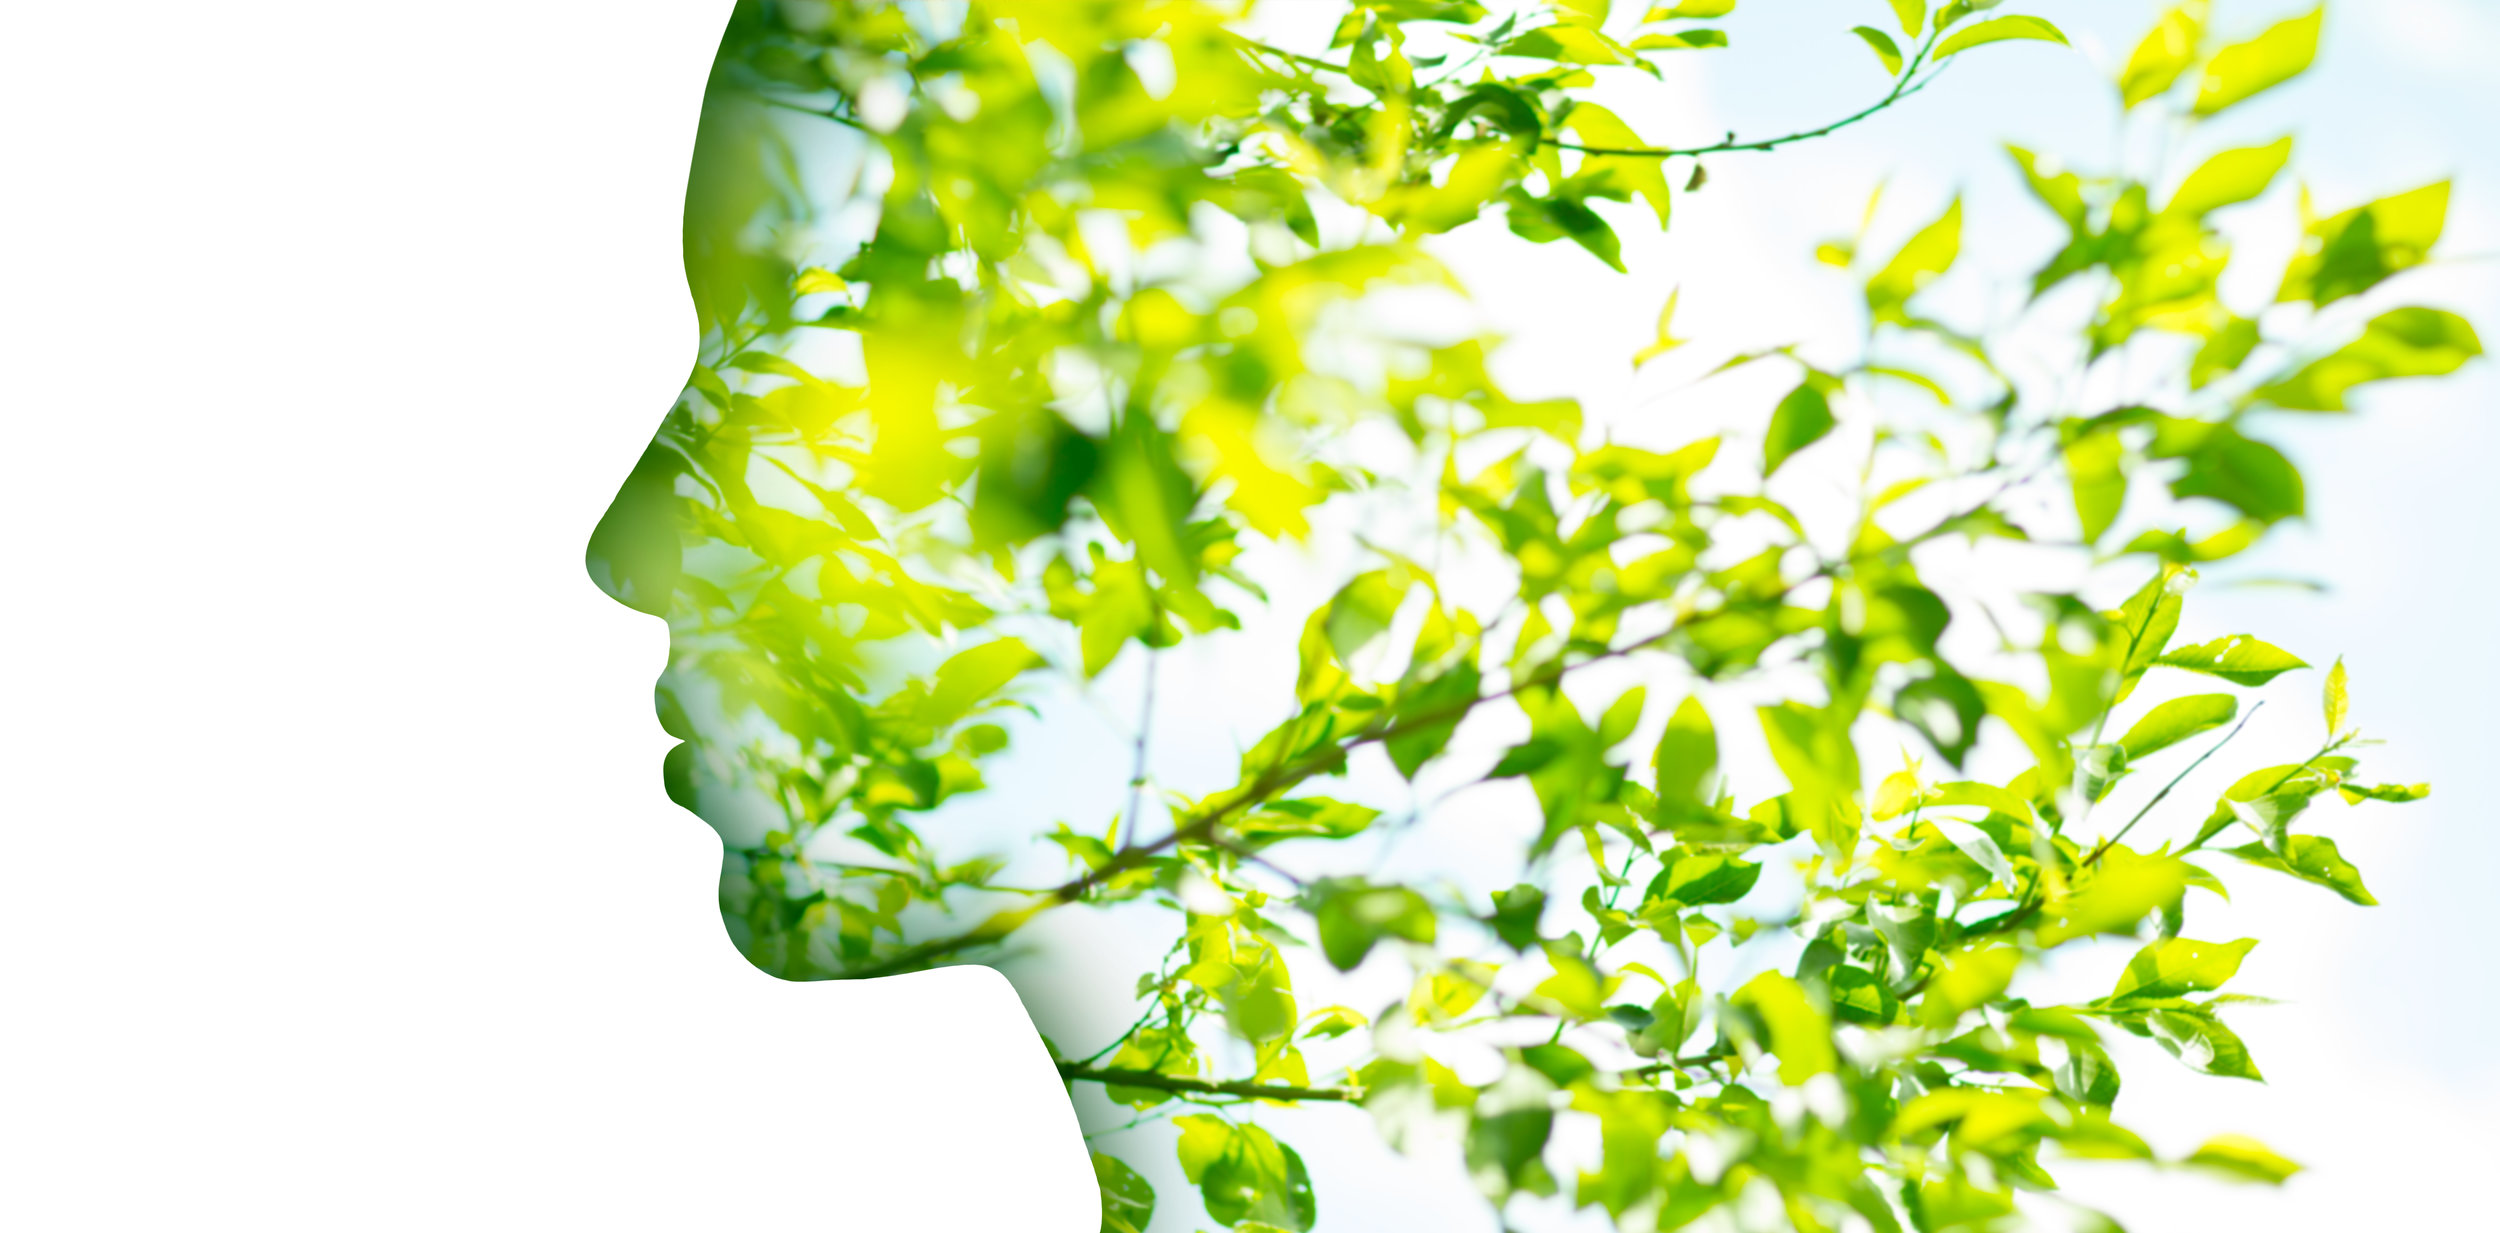 beauty, nature and ecology concept - portrait of woman profile with green tree foliage with double exposure effect